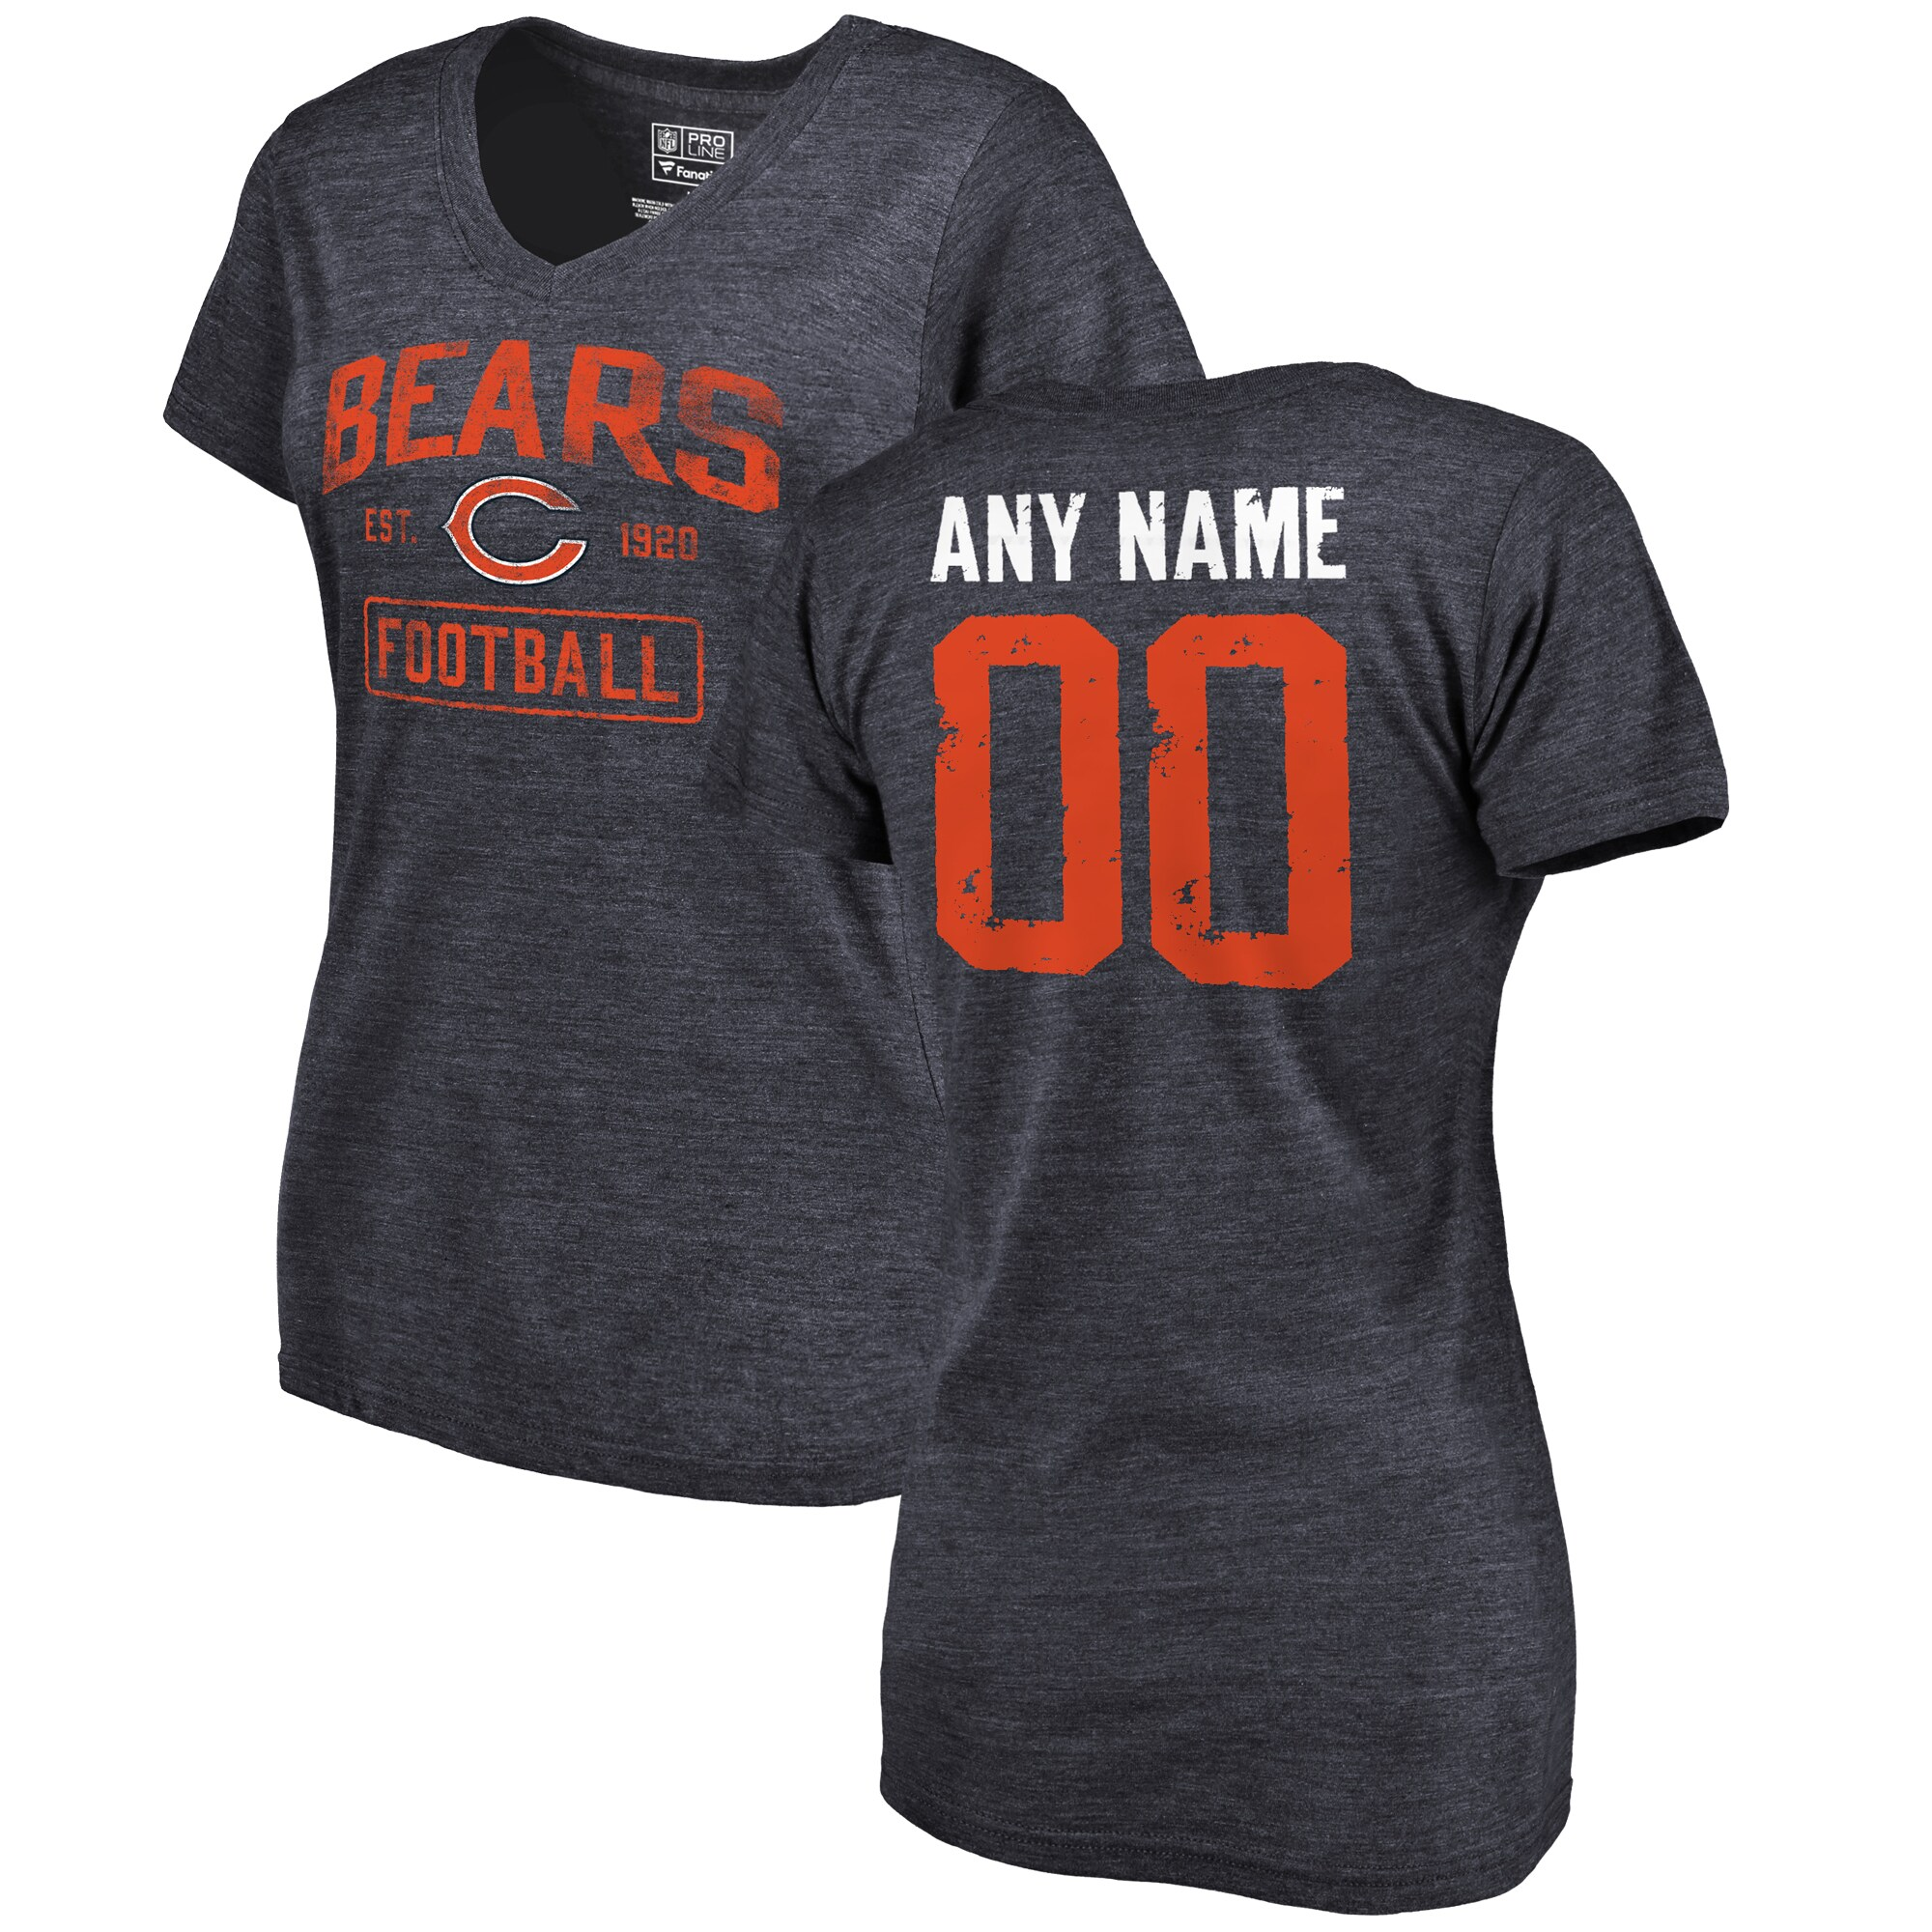 Chicago Bears NFL Pro Line by Fanatics Branded Women's Distressed Personalized Tri-Blend V-Neck T-Shirt - Navy